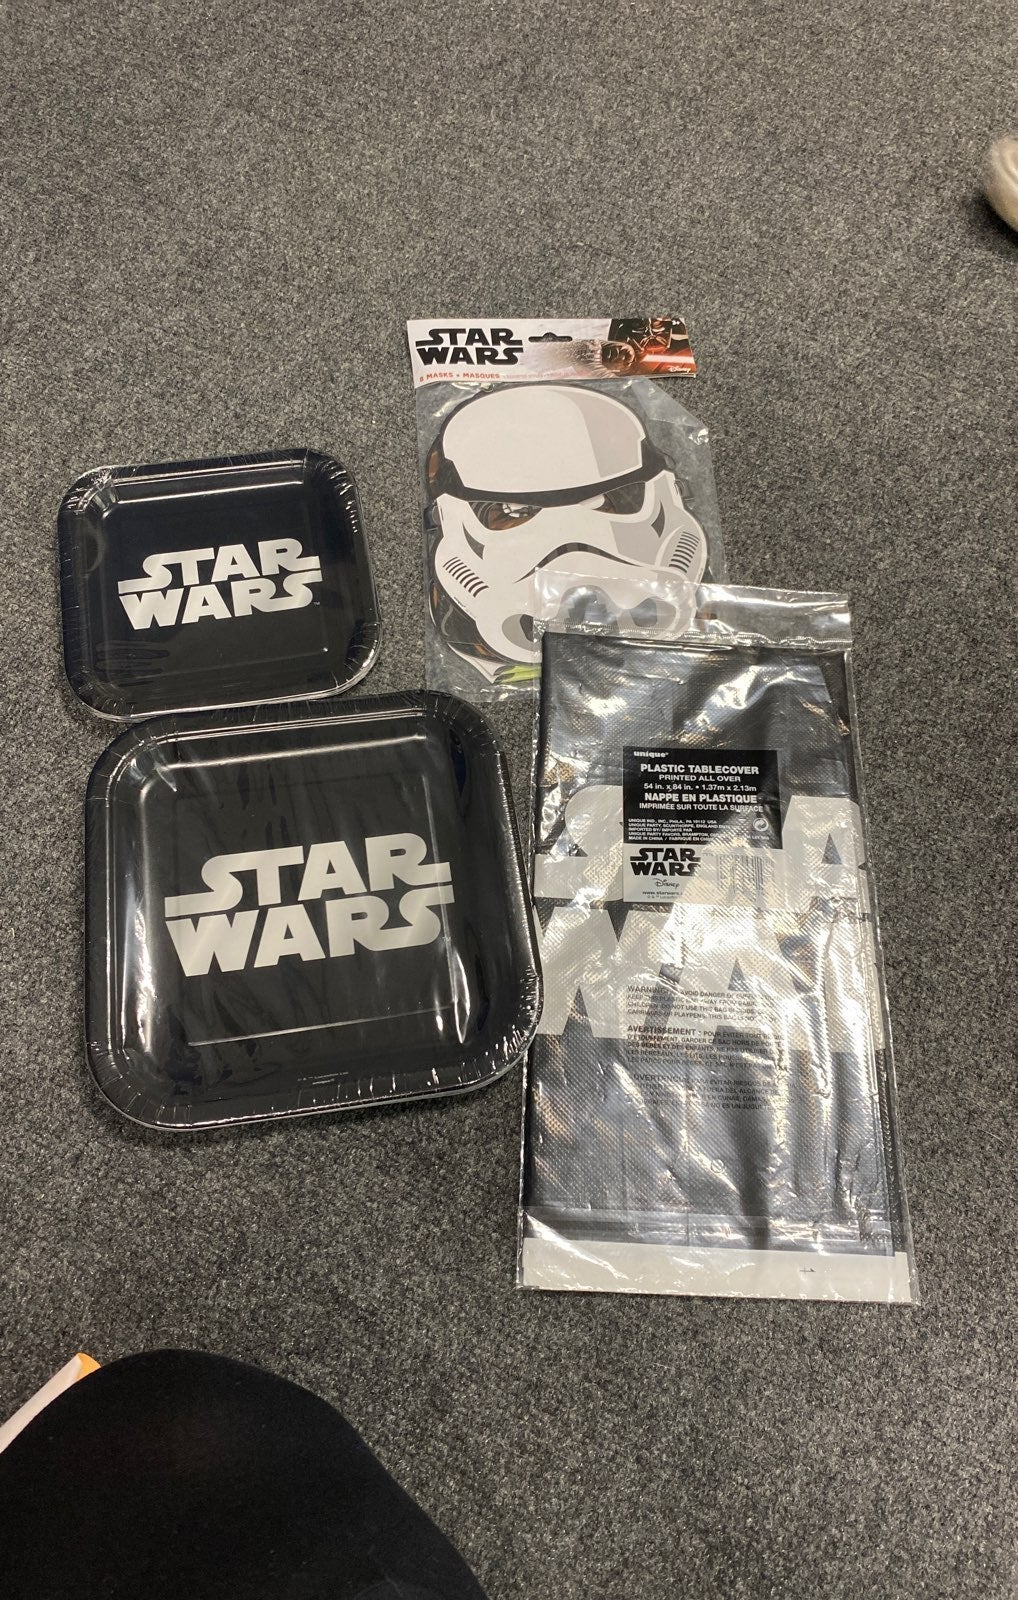 Star wars party pack